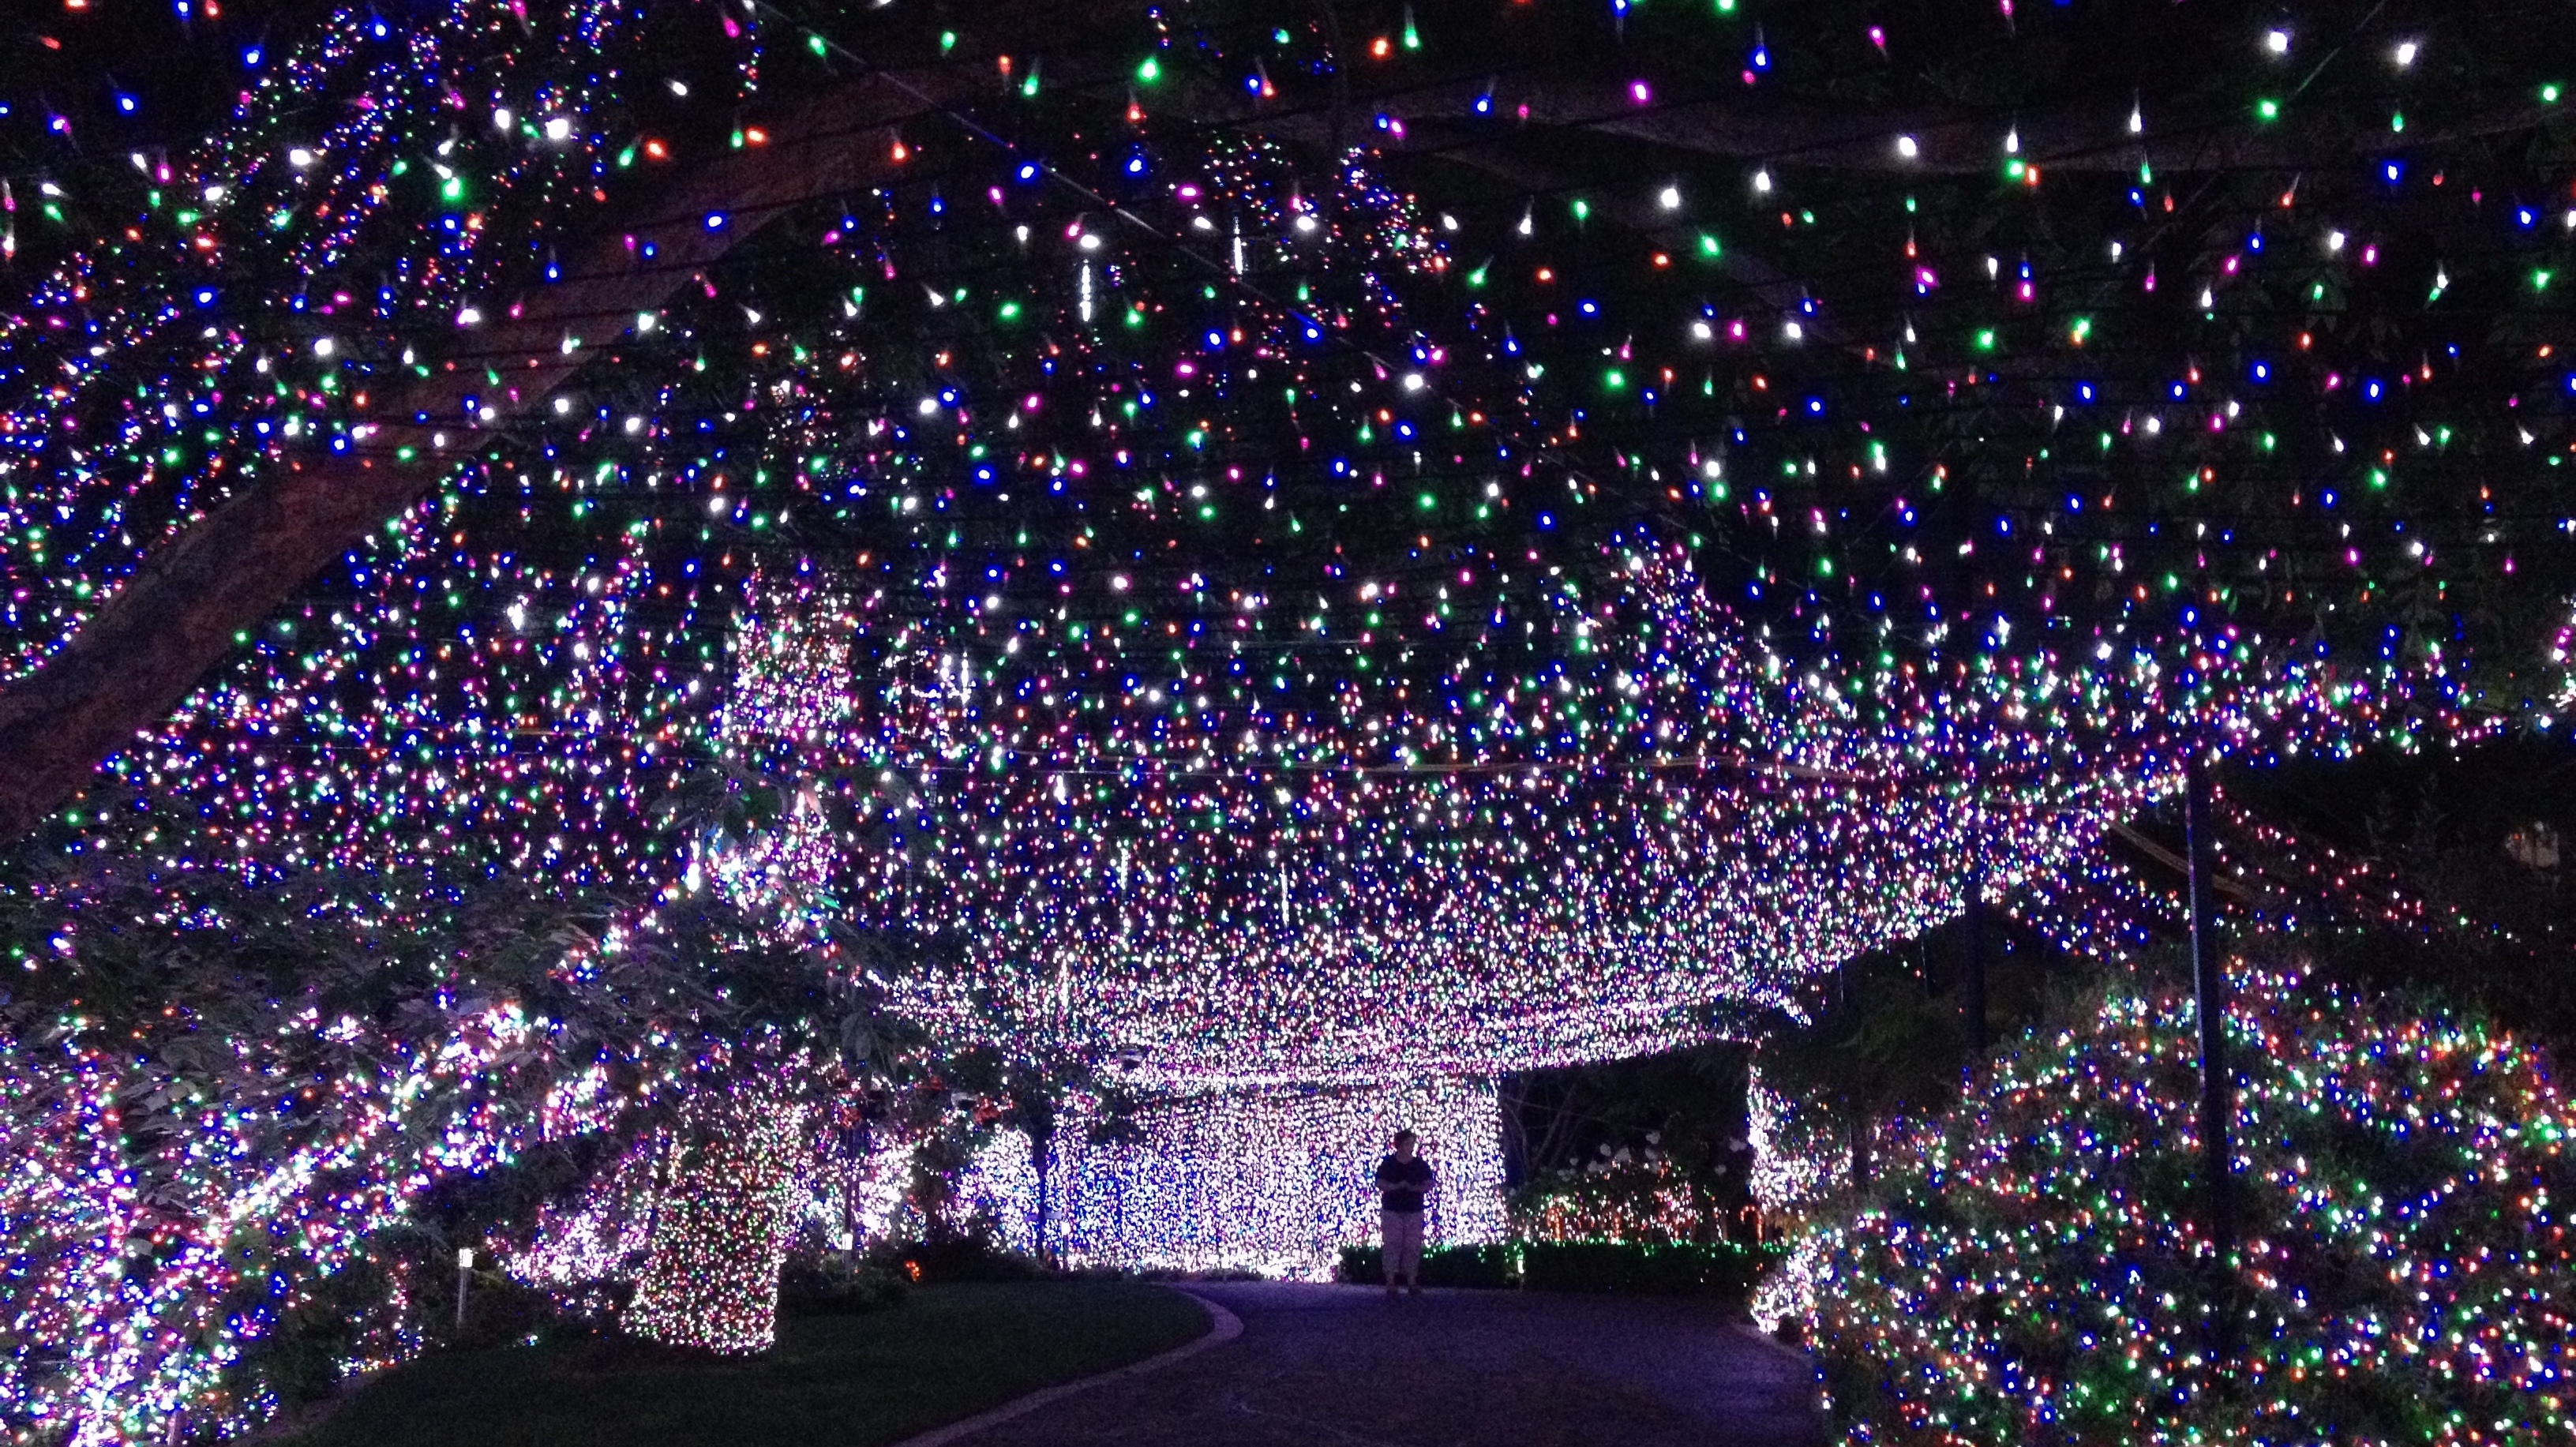 hight resolution of 500 000 lights family s christmas display sets new world record in australia the two way npr